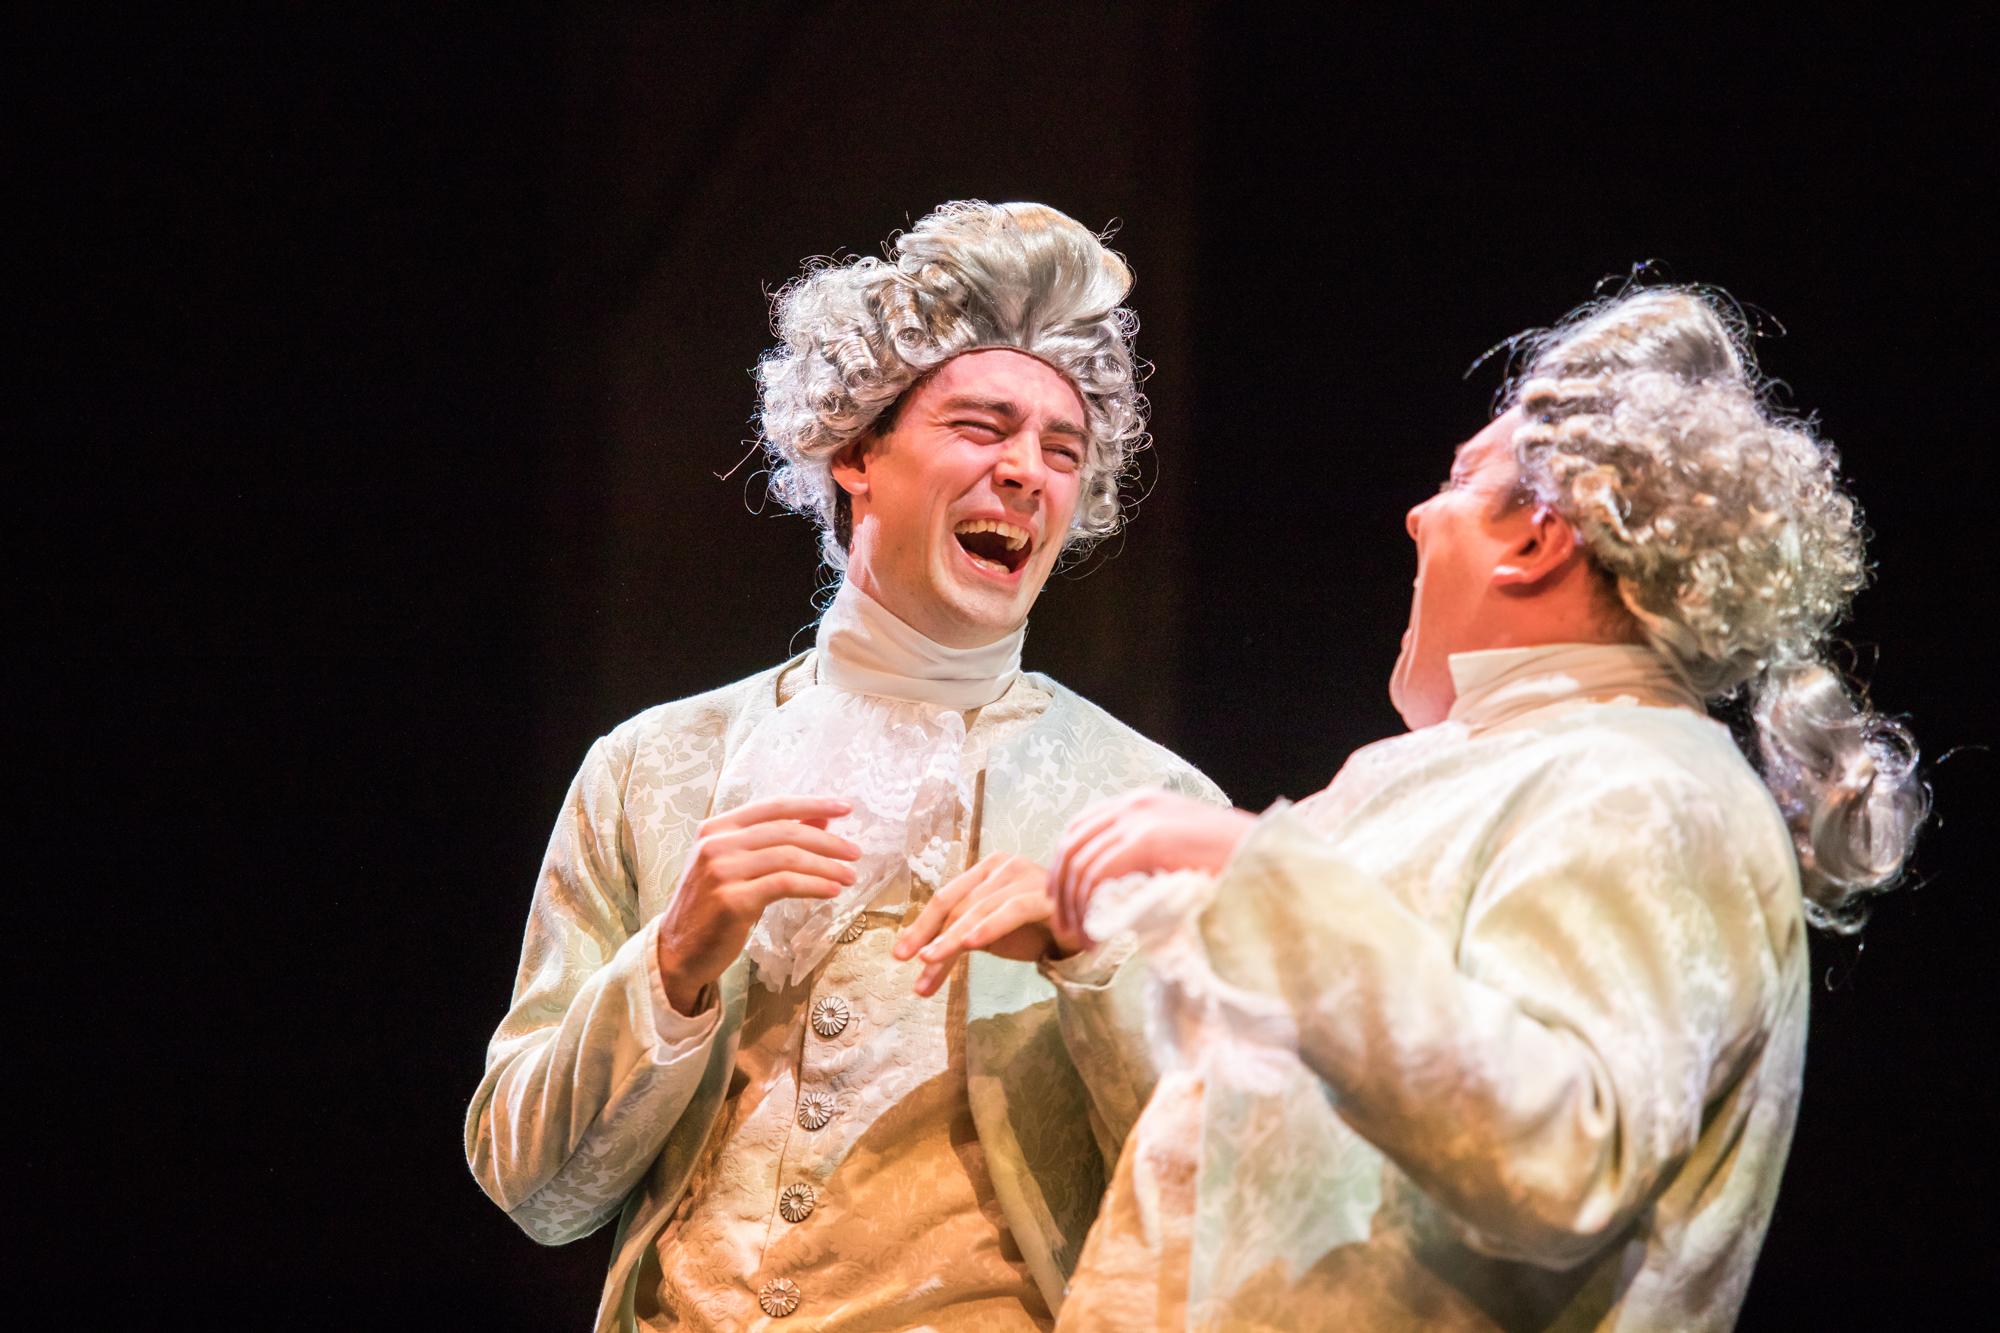 Woodrow and Brian Owen as Venticelli 1 and Venticalli 2 in a dress rehearsal photo from the Arts Center of Coastal Carolina's 2018 production of Amadeus.